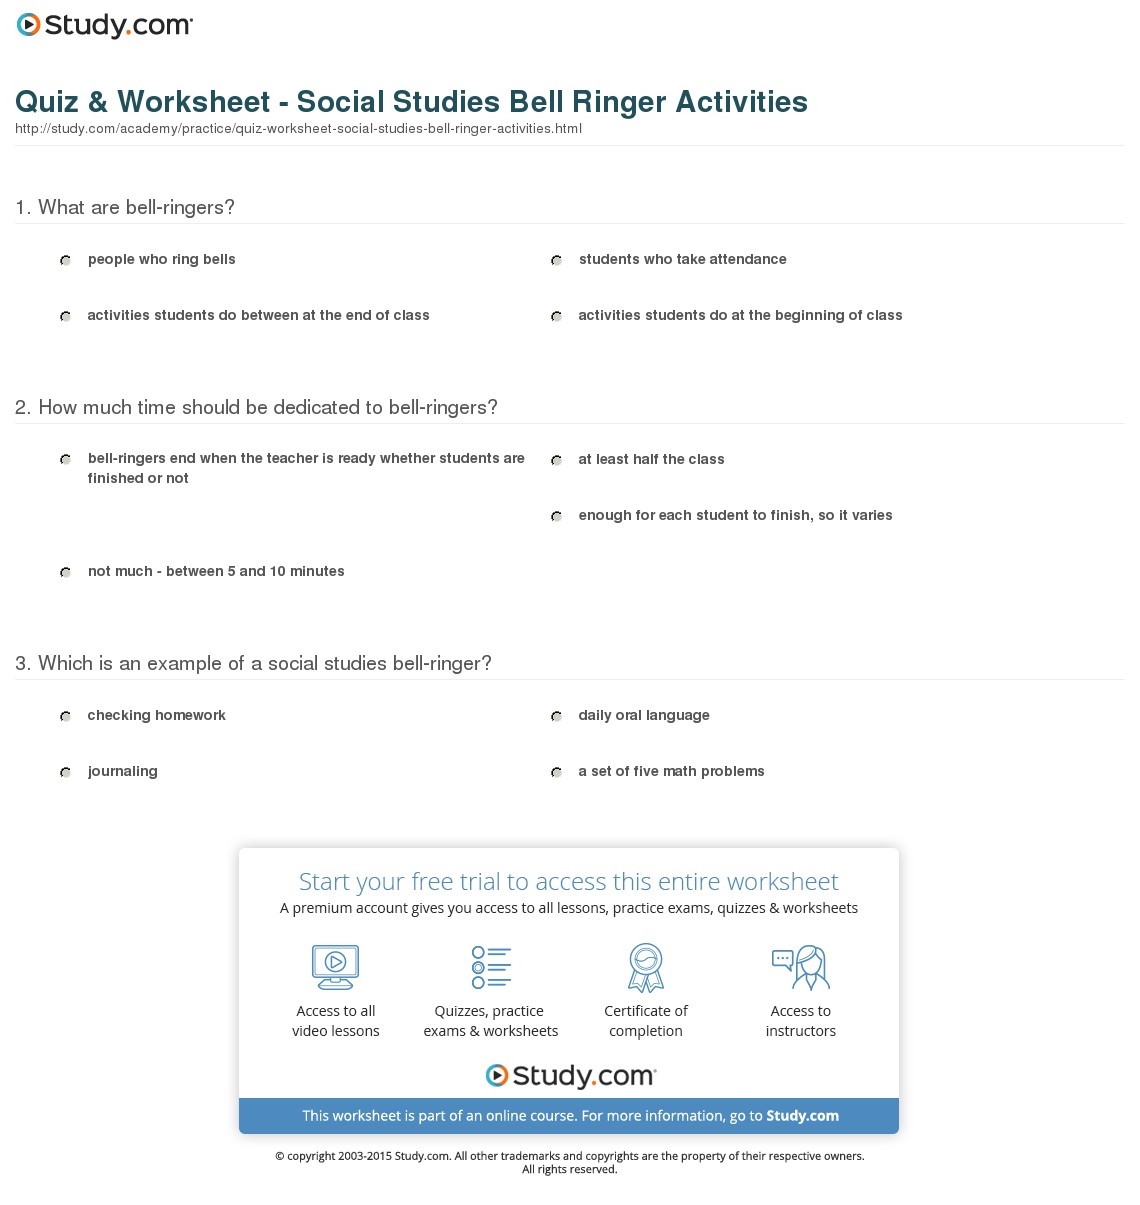 016 Essay Example Quiz Worksheet Social Studies Bell Ringer Activities Sample Ged Essays With Rare Scores Pdf Full